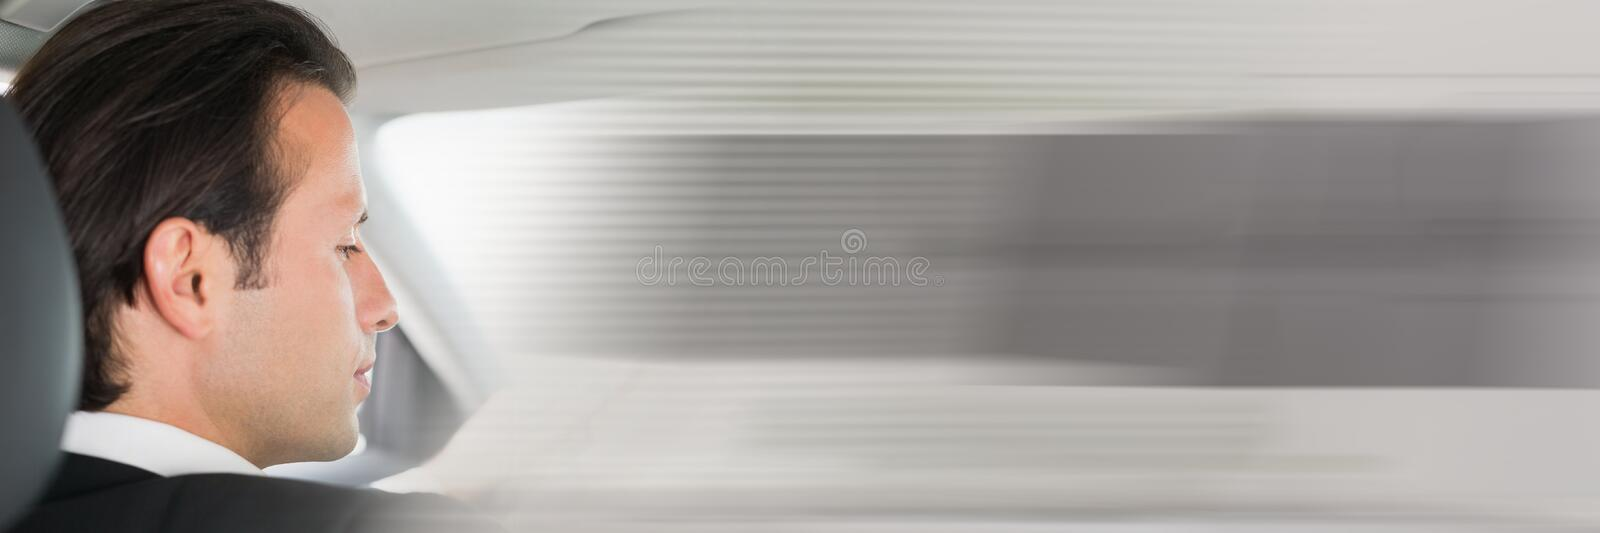 Man in car with transition effect stock image